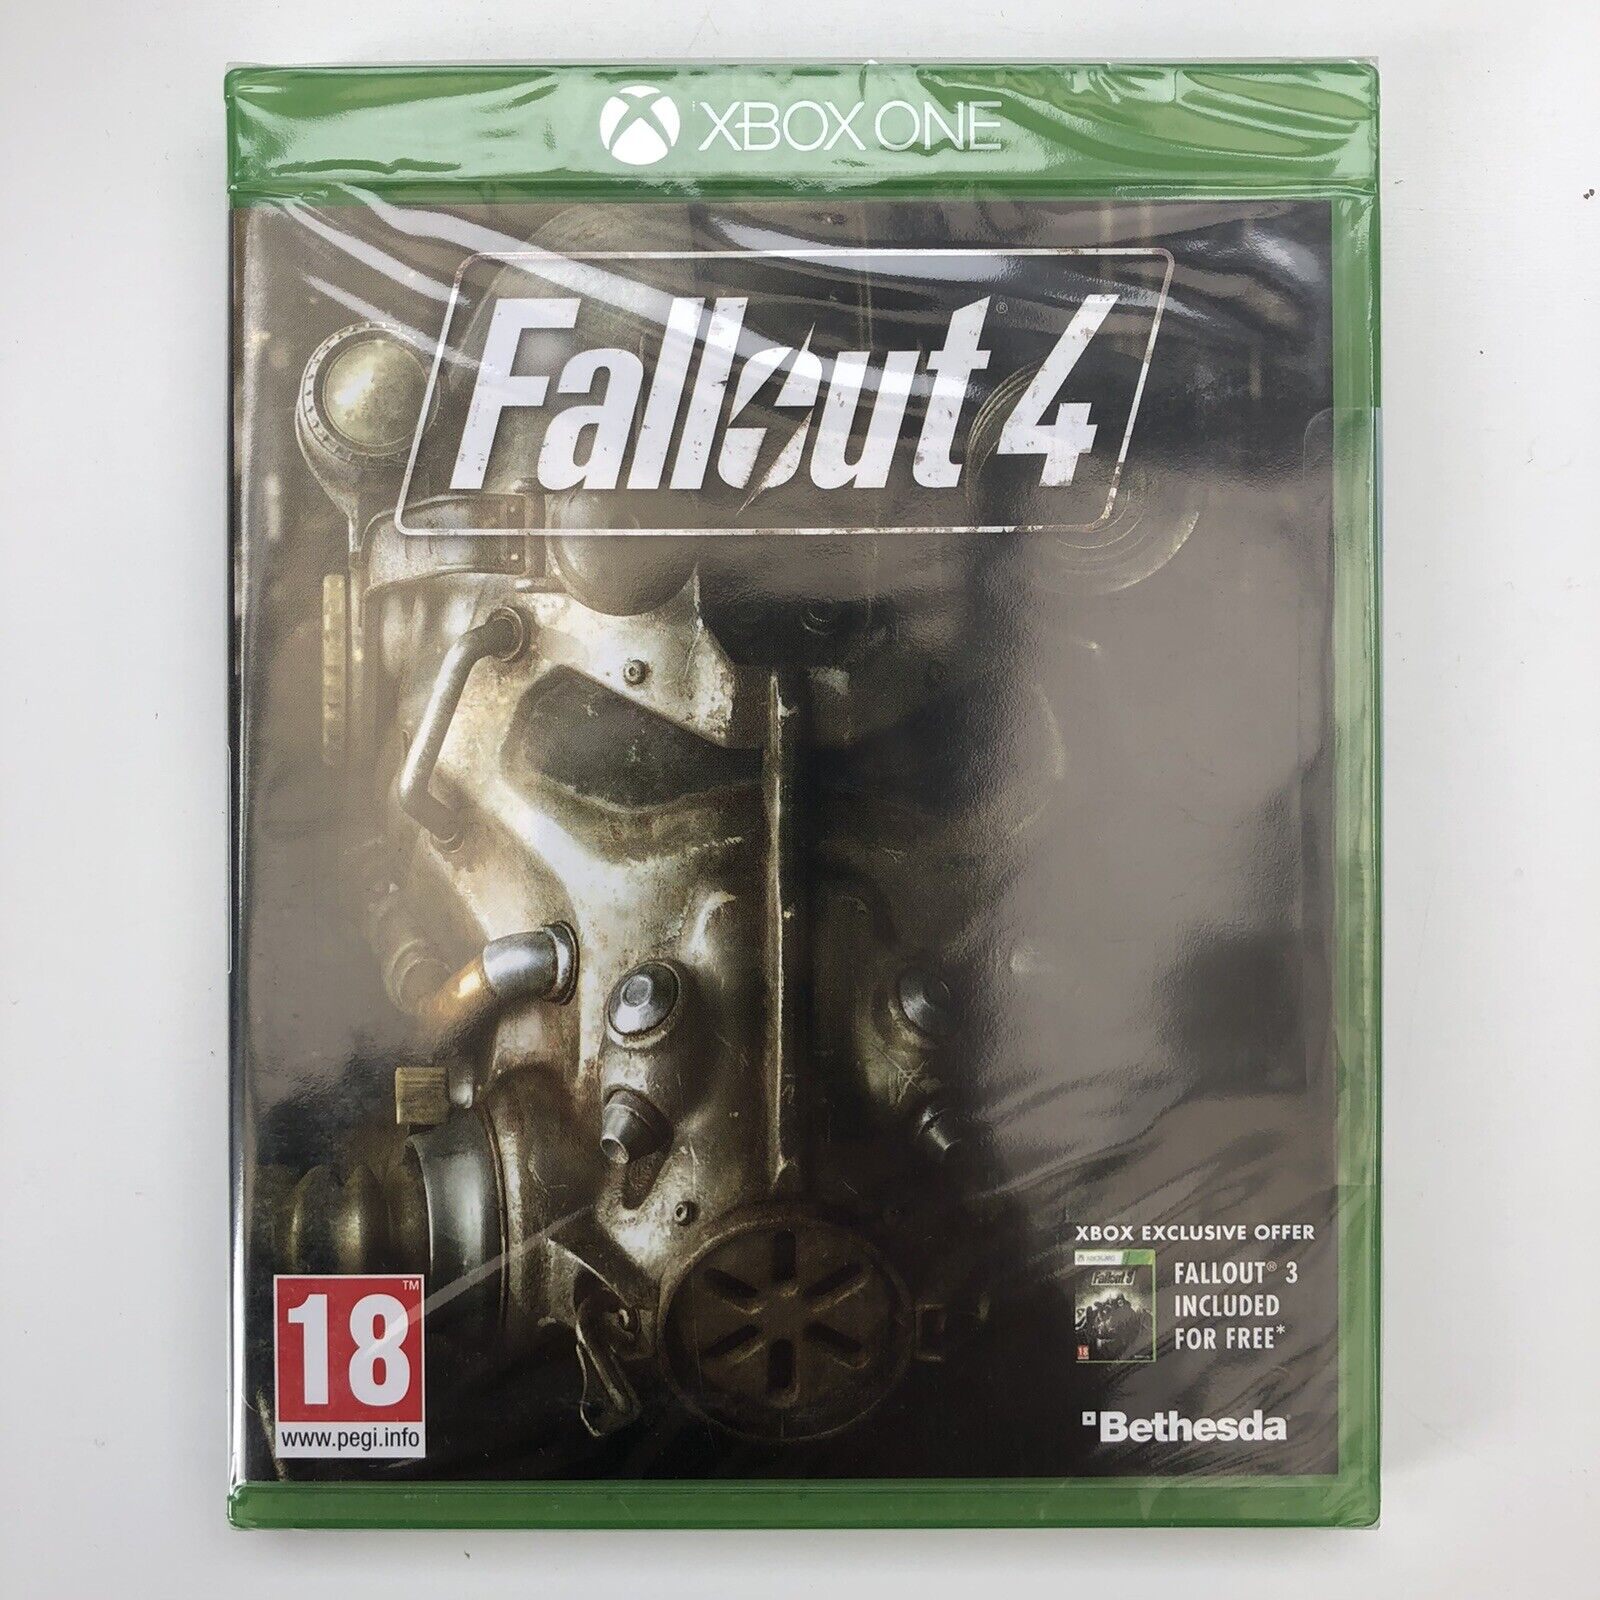 Fallout 4 (Includes Fallout 3) - Xbox One